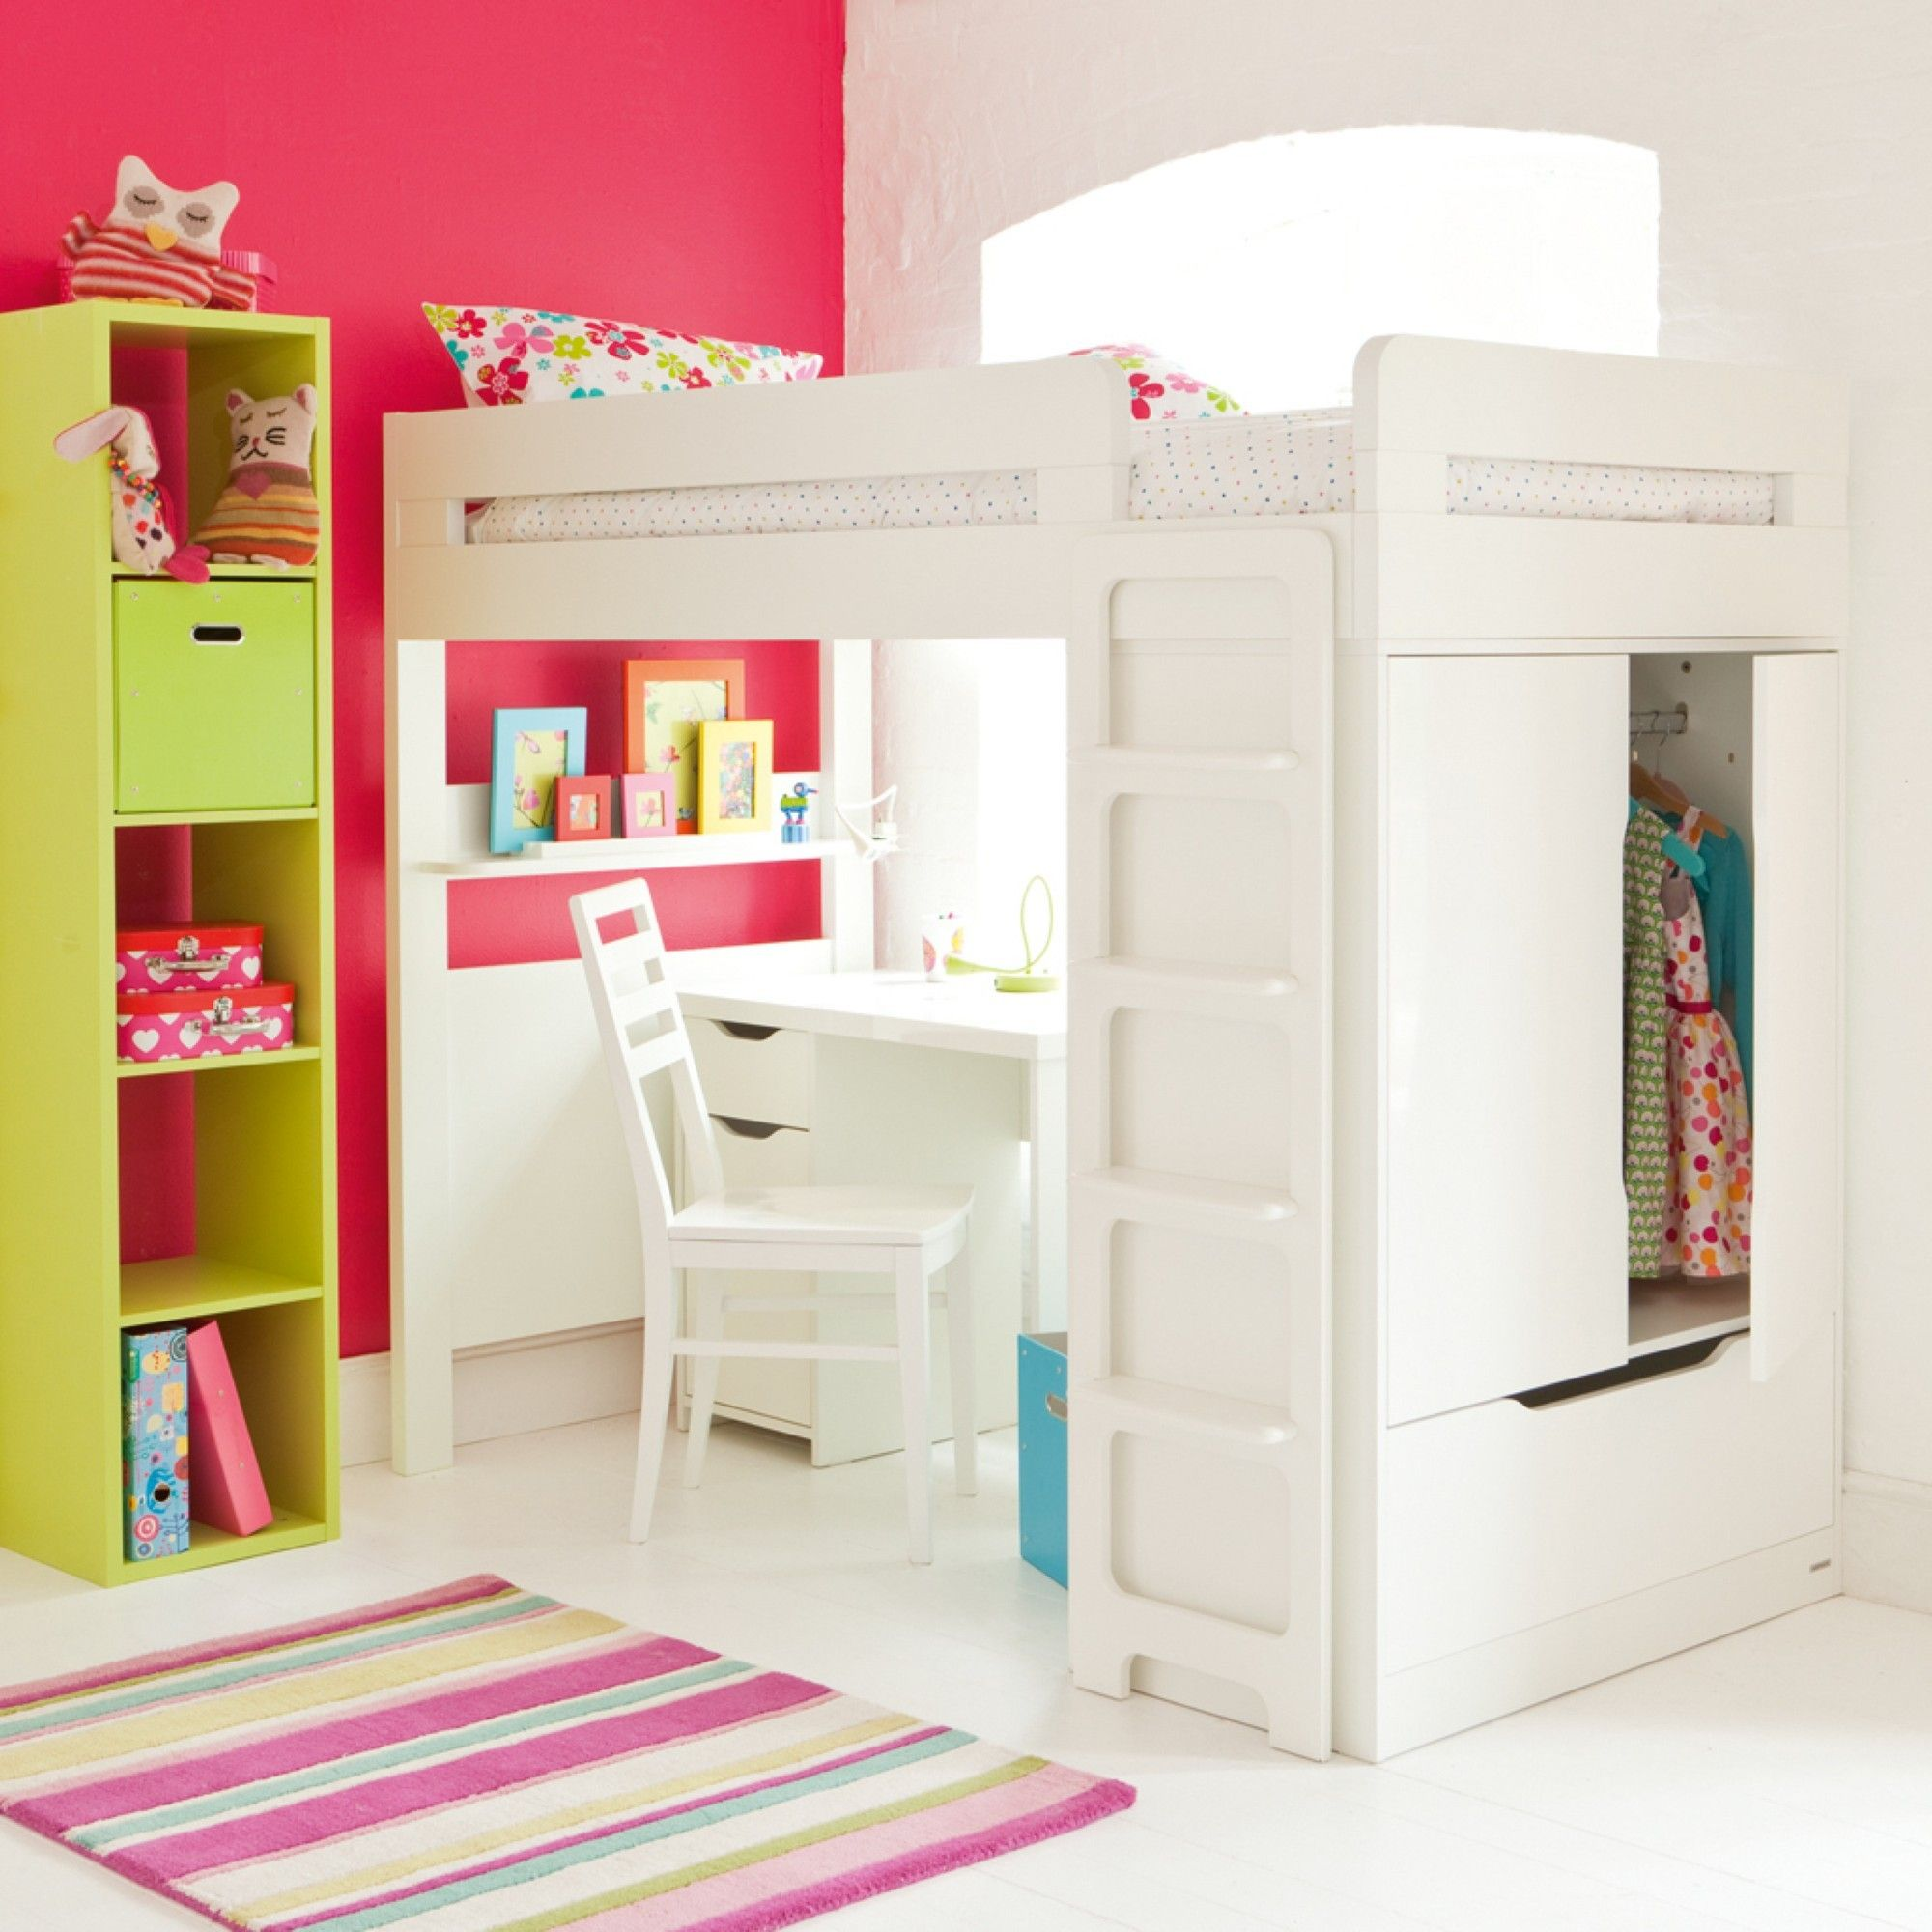 High sleeper loft style cabin bed with hideaway futon bed rutland - The Farringdon High Sleeper Includes A Bed With An Integral Double Door Wardrobe With Soft Close Doors Storage Drawer A Book Shelf And Desk